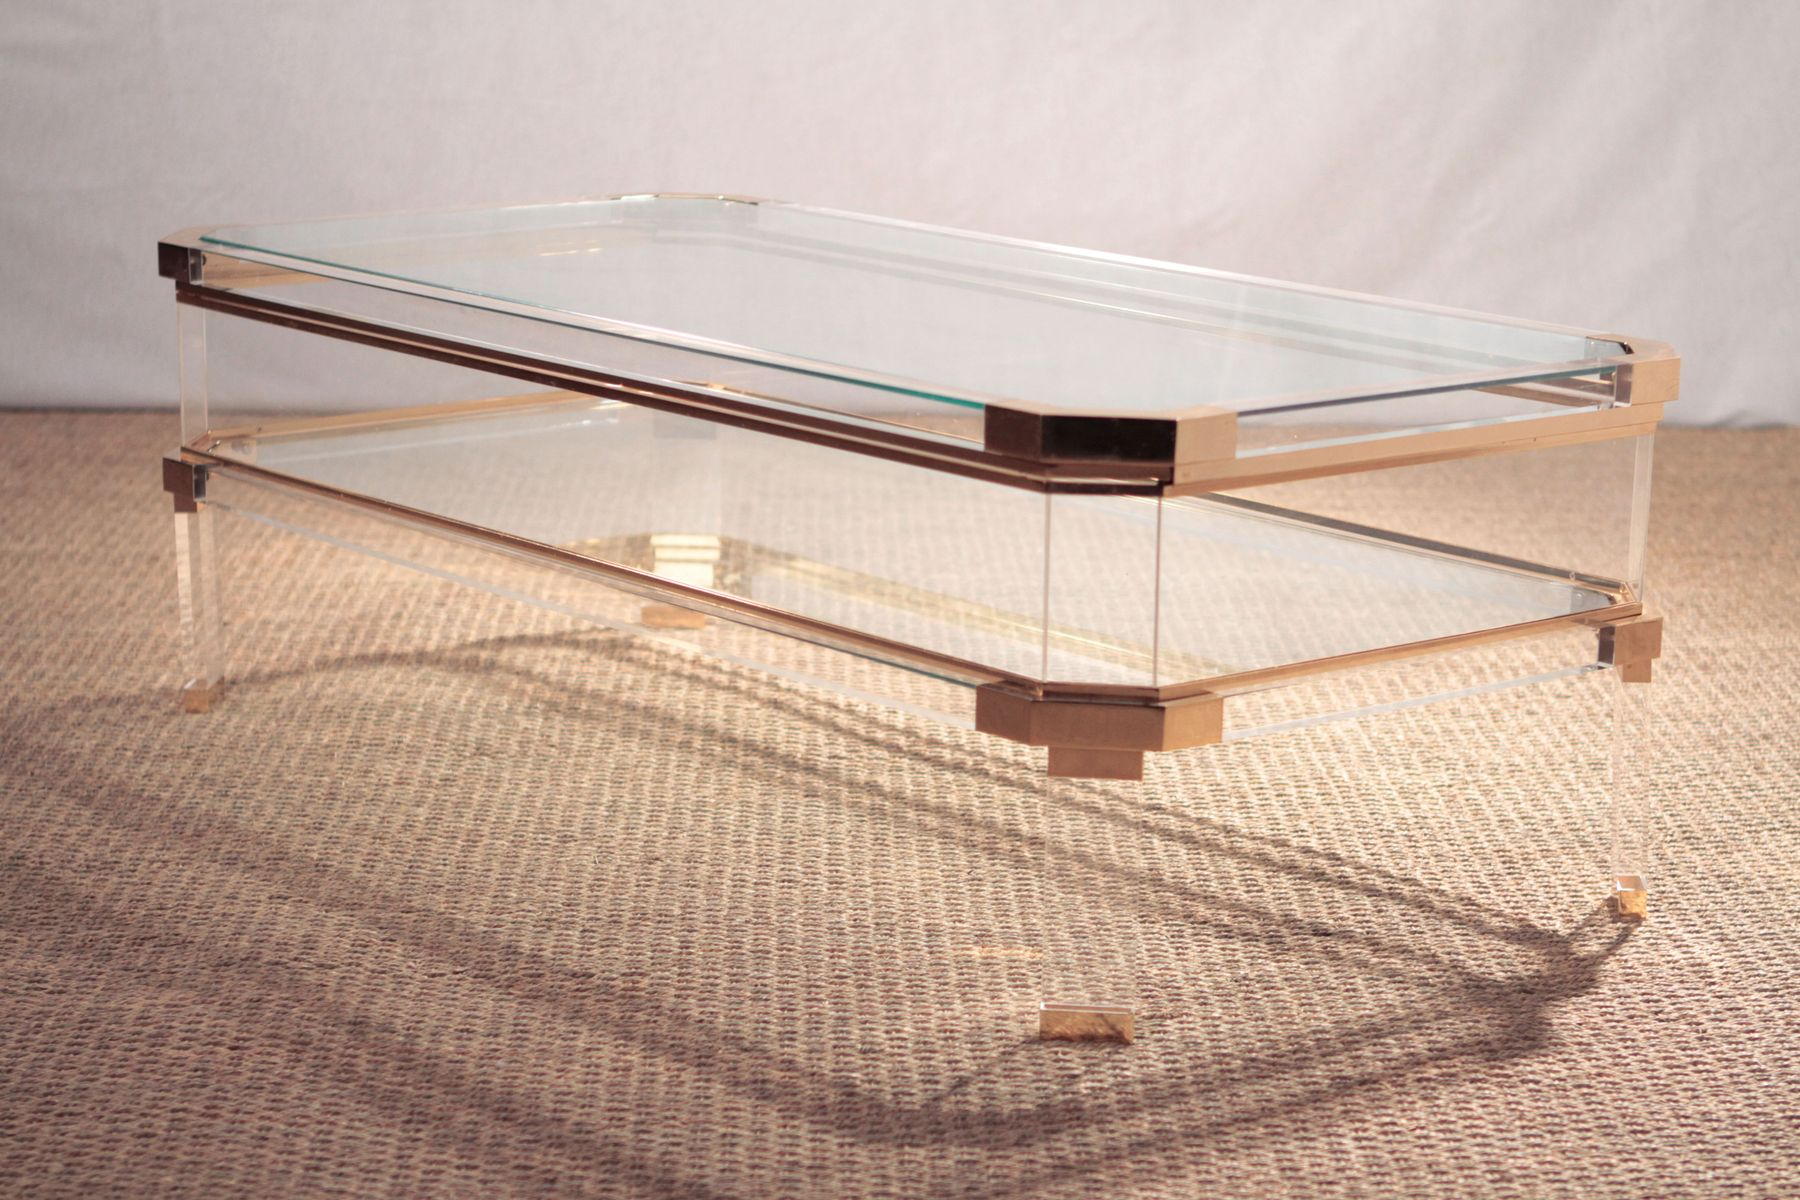 Vintage Plexiglas & Brass Coffee Table for sale at Pamono -> Table Basse Plexiglass